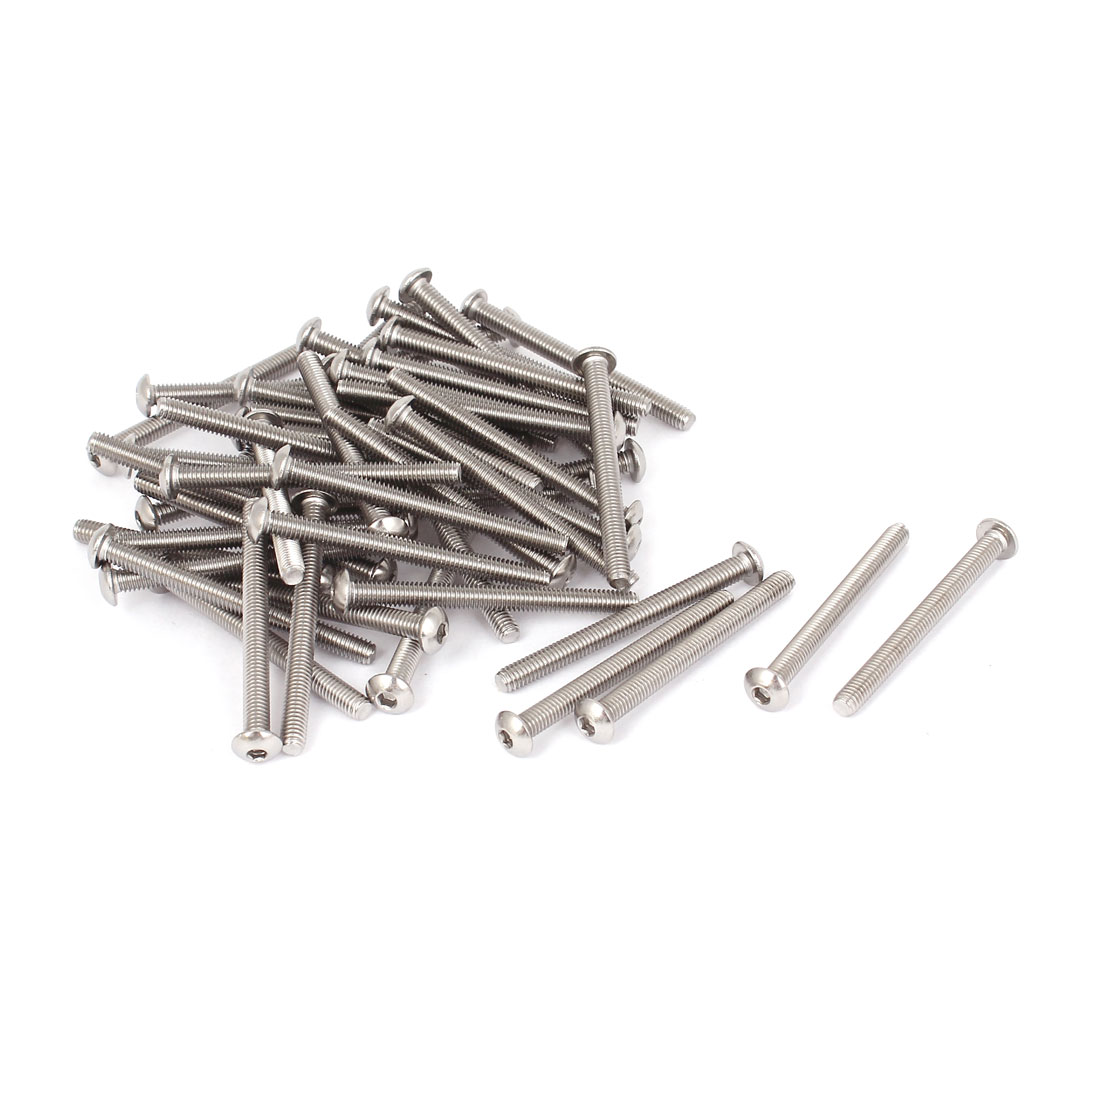 50 Pcs M4x45mm Stainless Steel Hex Socket Button Head Bolts Screws 47mm Long